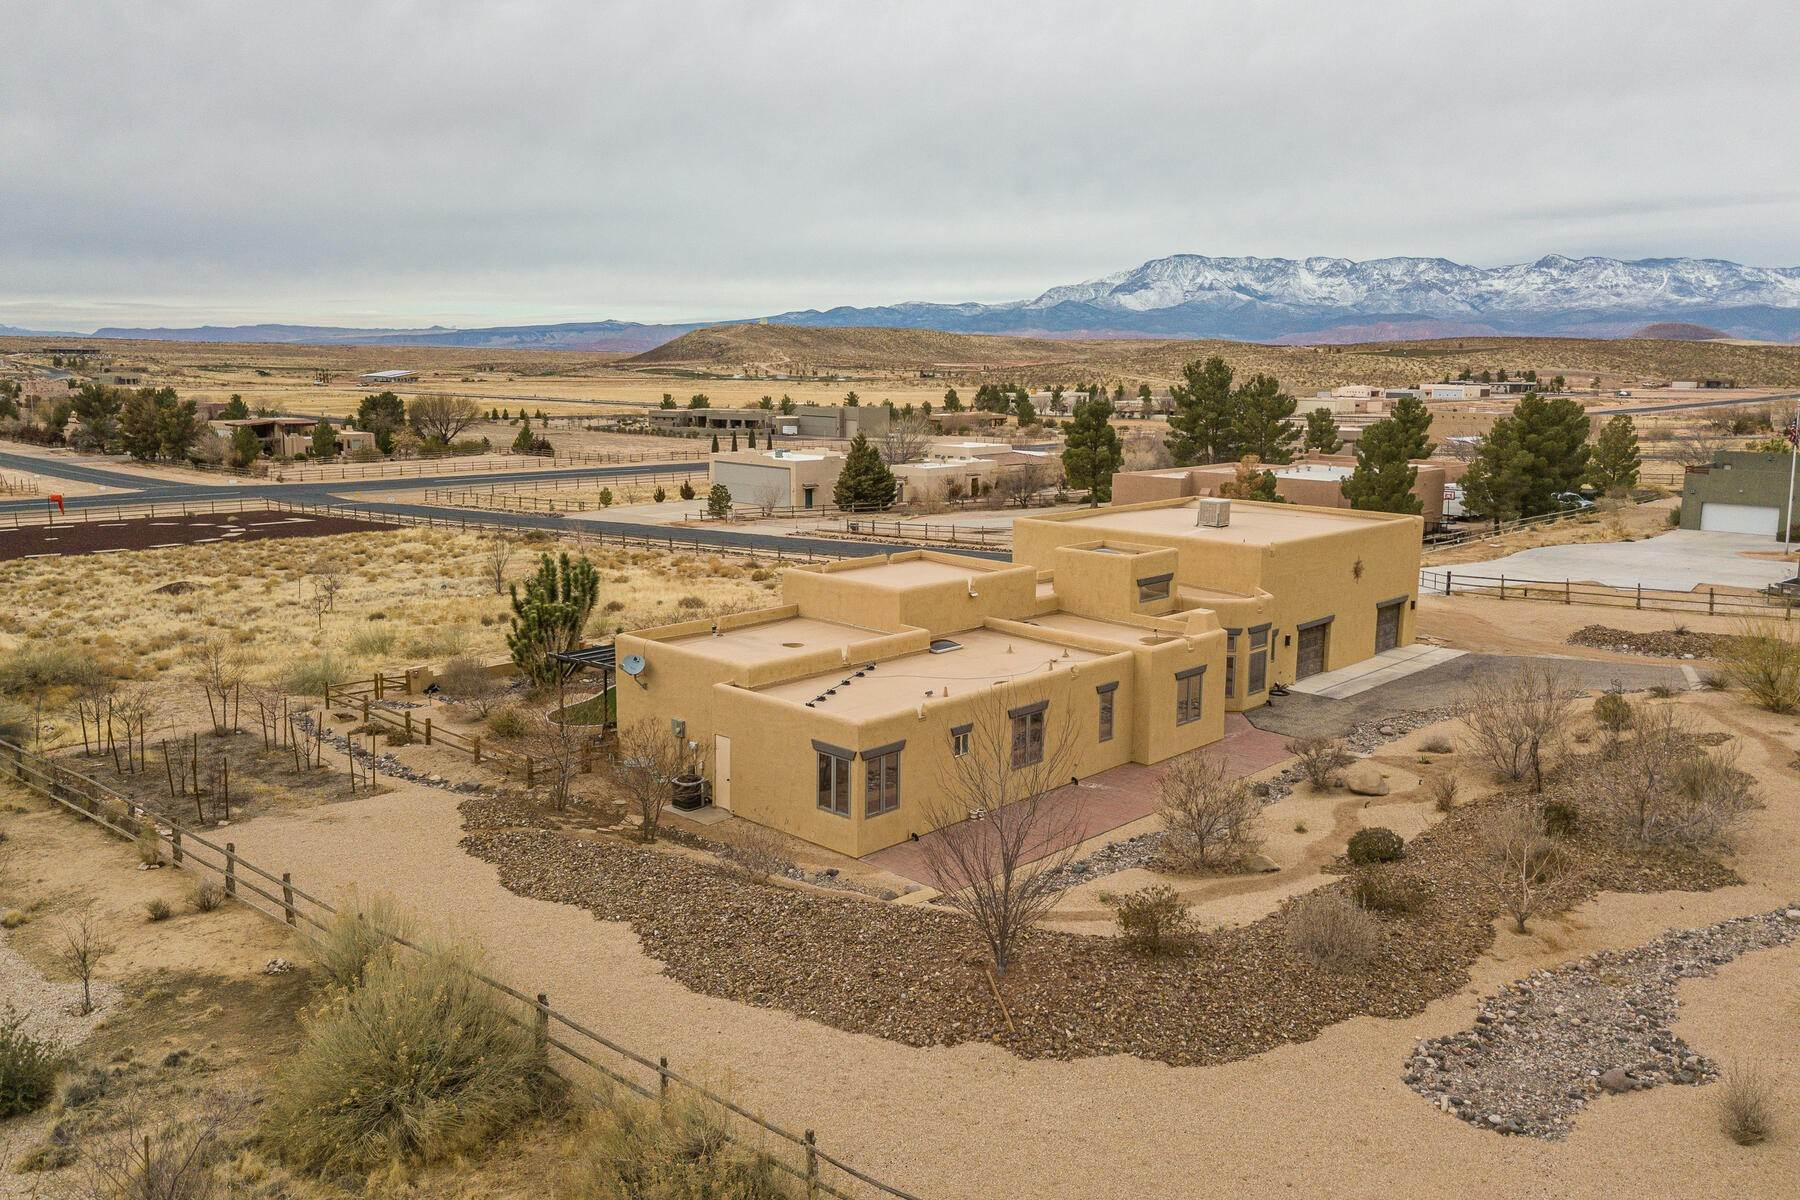 Single Family Homes for Sale at Over 2 Acres Property, Fly-In Community 4446 South 1100 West Hurricane, Utah 84737 United States